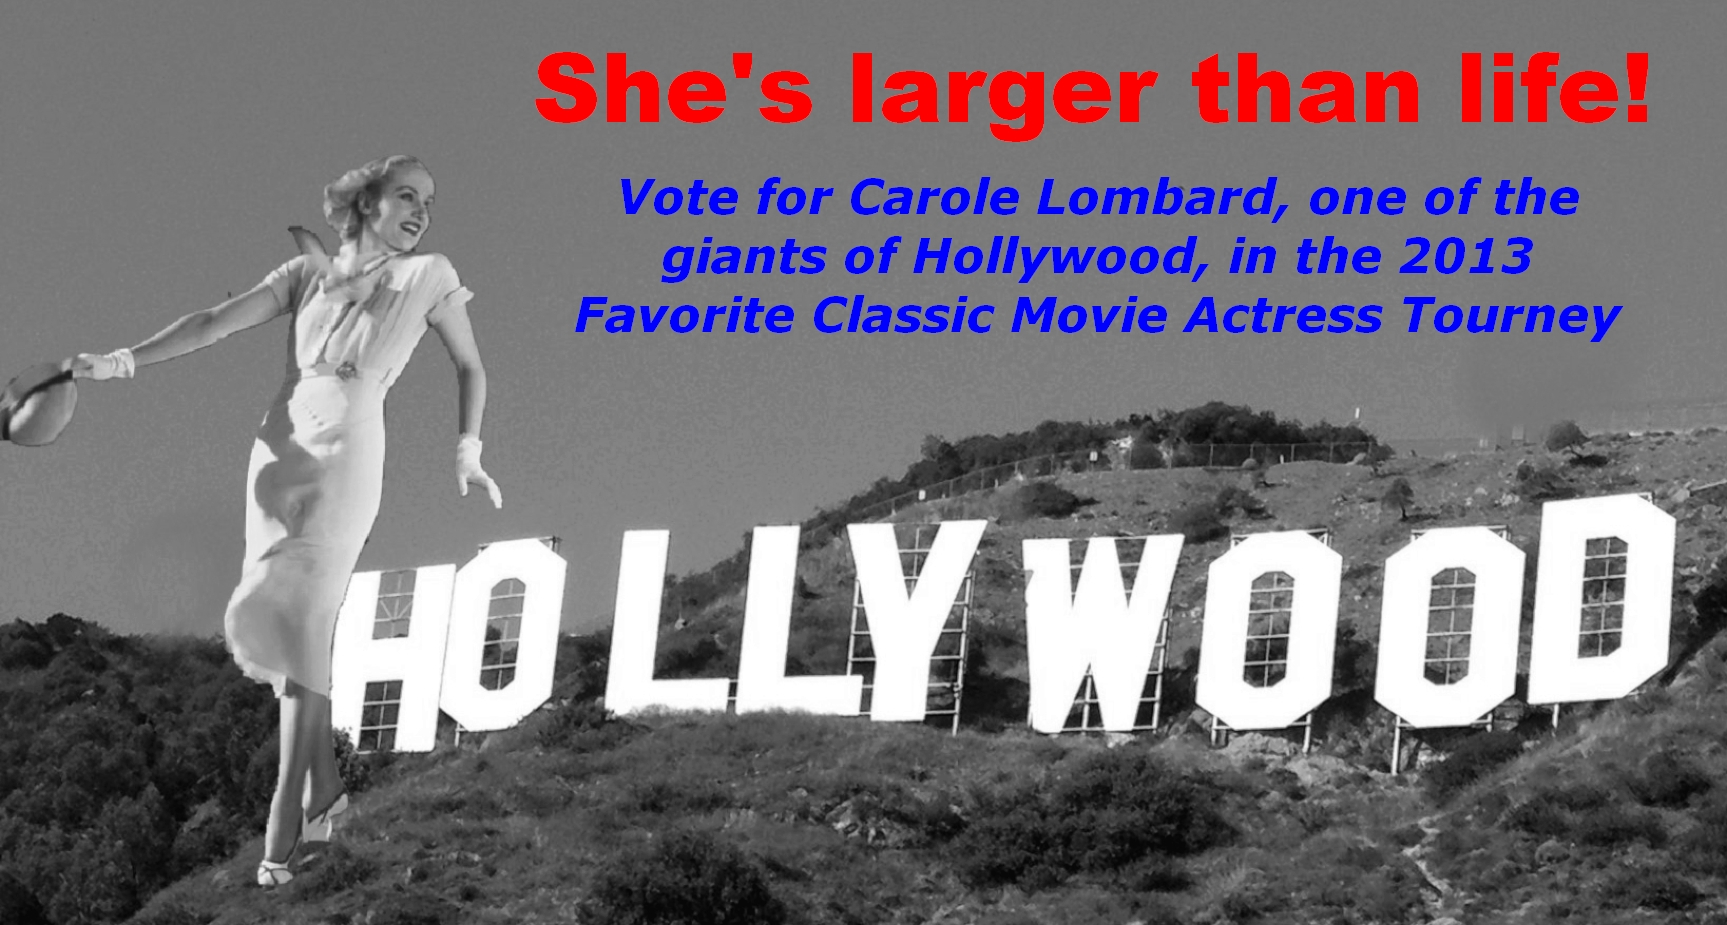 carole lombard 2013 favorite classic movie actress tourney banner 02